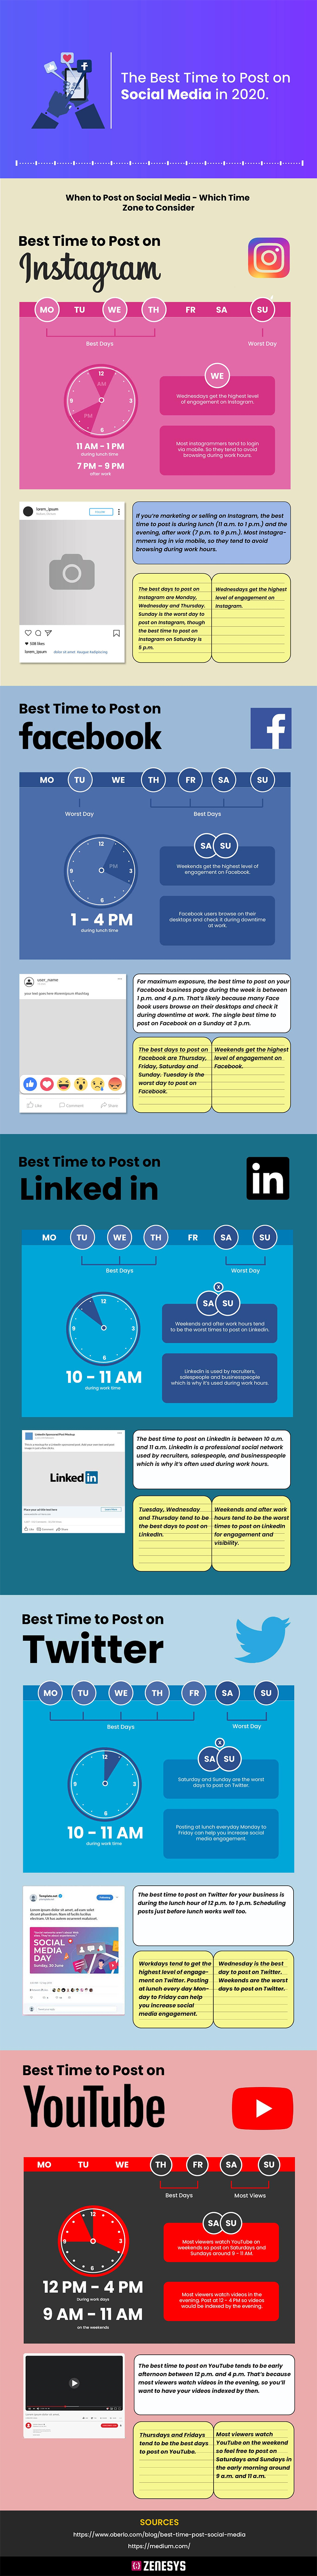 Best Times to Publish on Social Media graphic